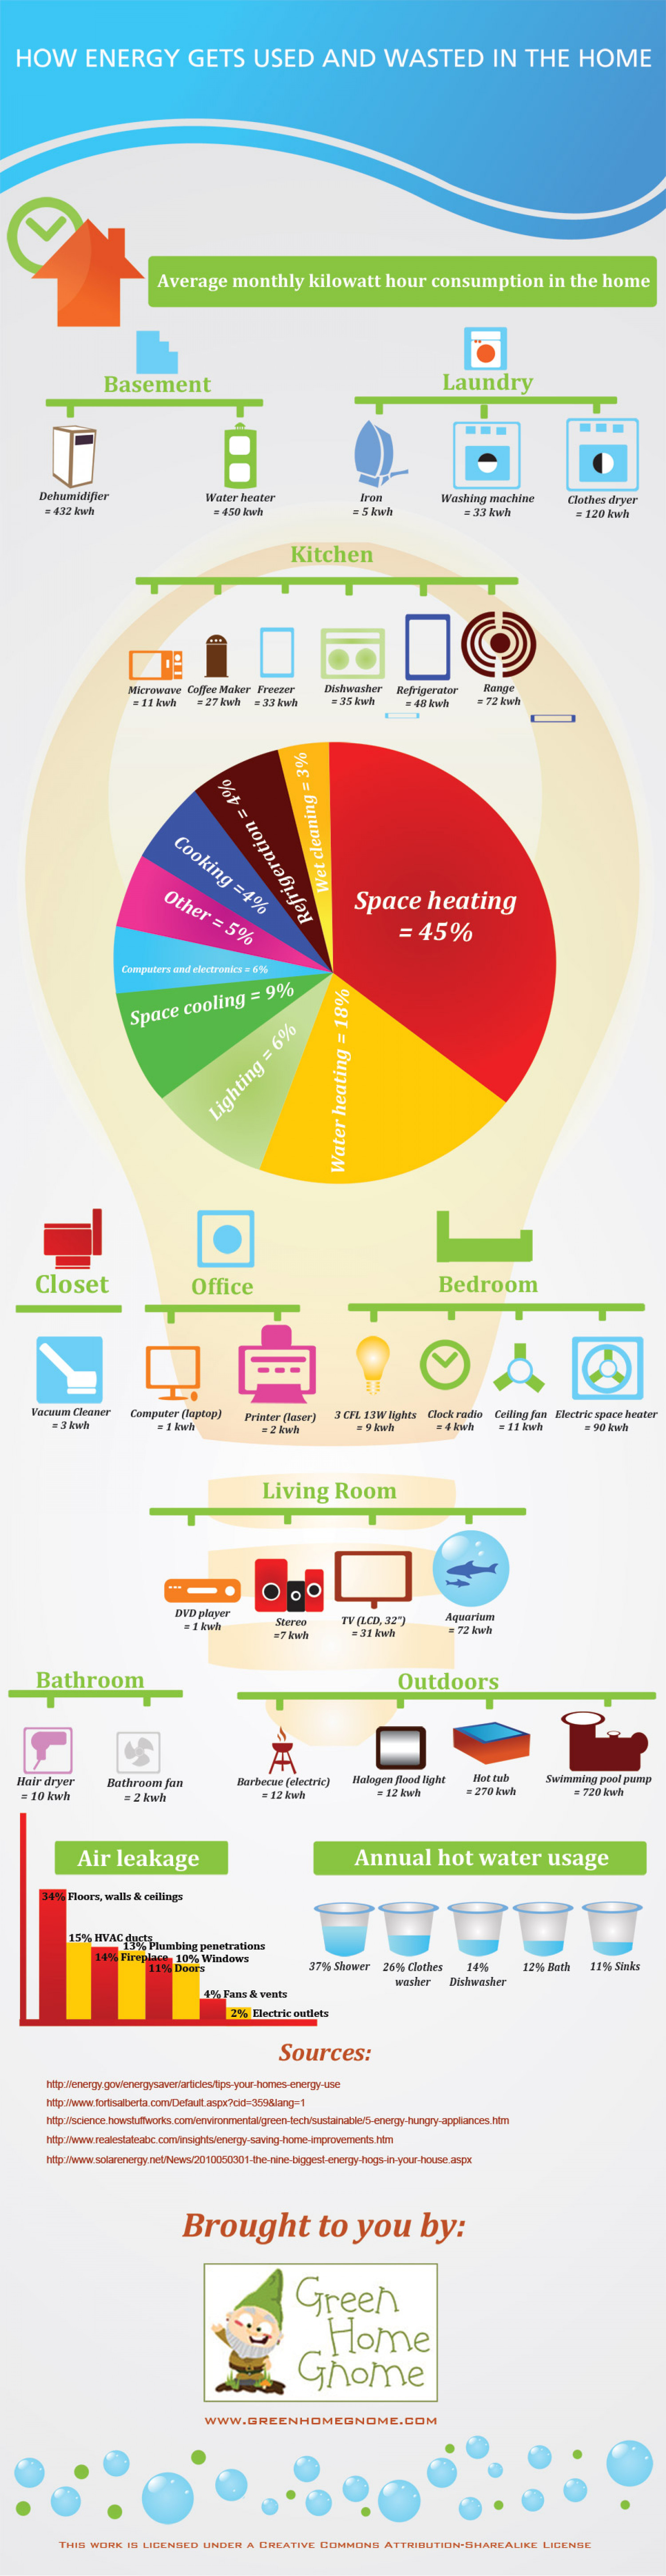 How energy gets used and wasted in the home Infographic